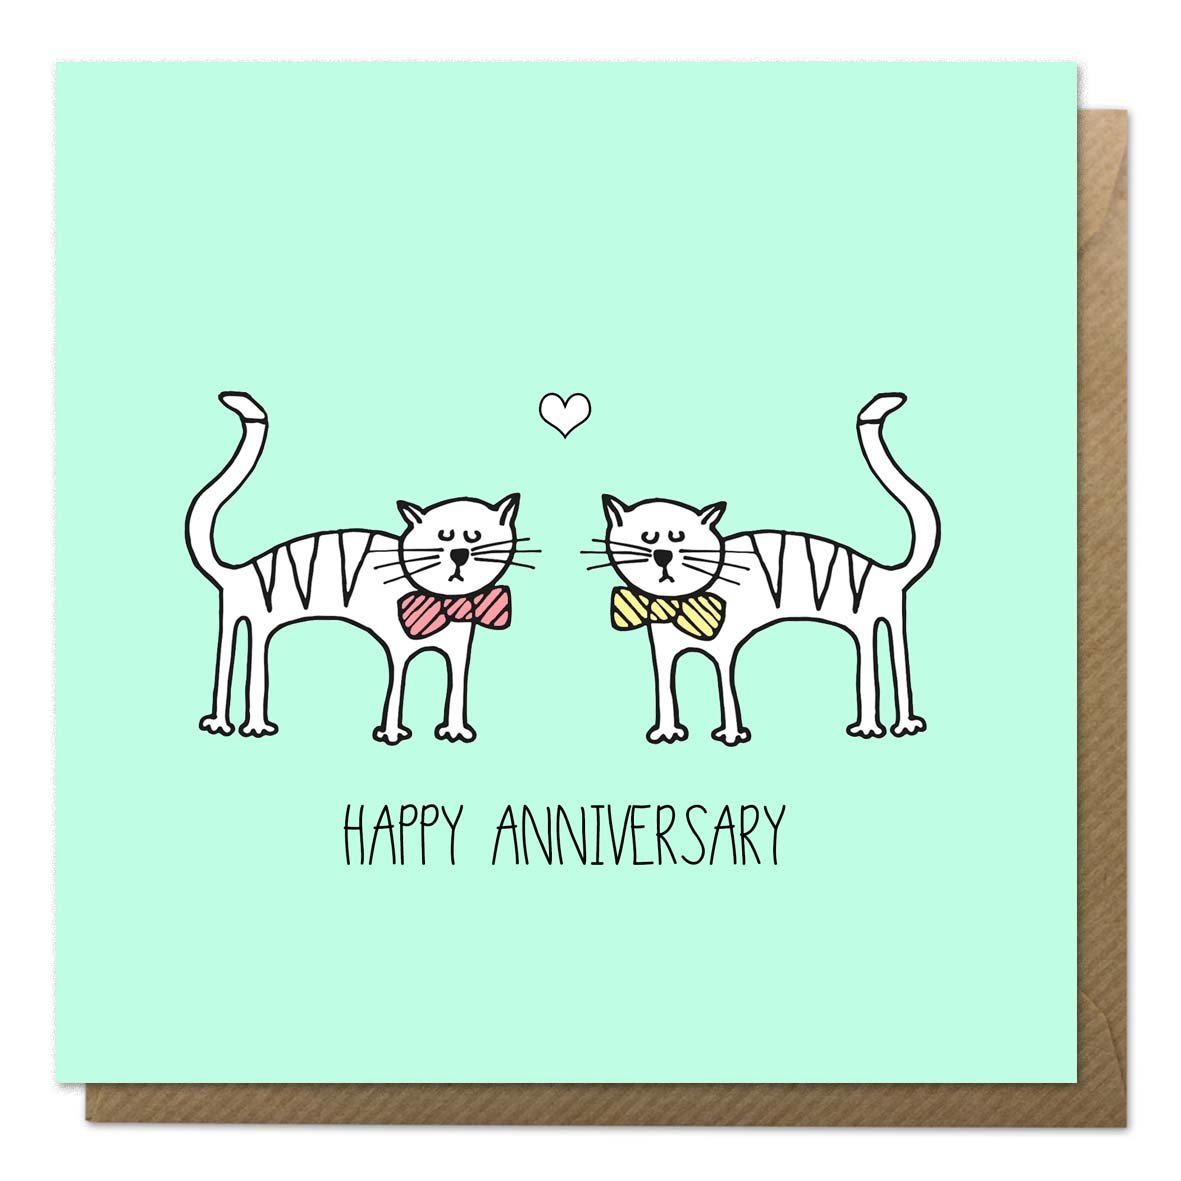 Green anniversary card with an illustration of two cats in bow ties